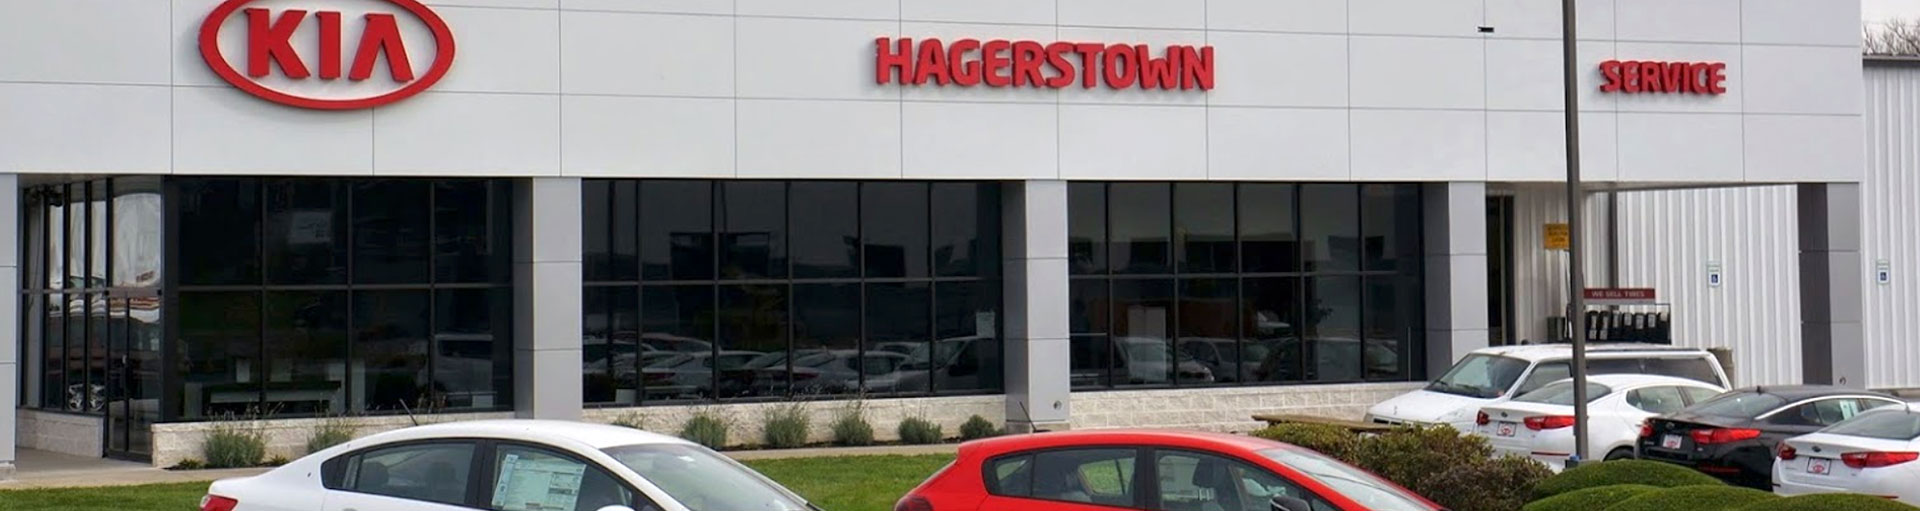 Hagerstown Kia Service Department